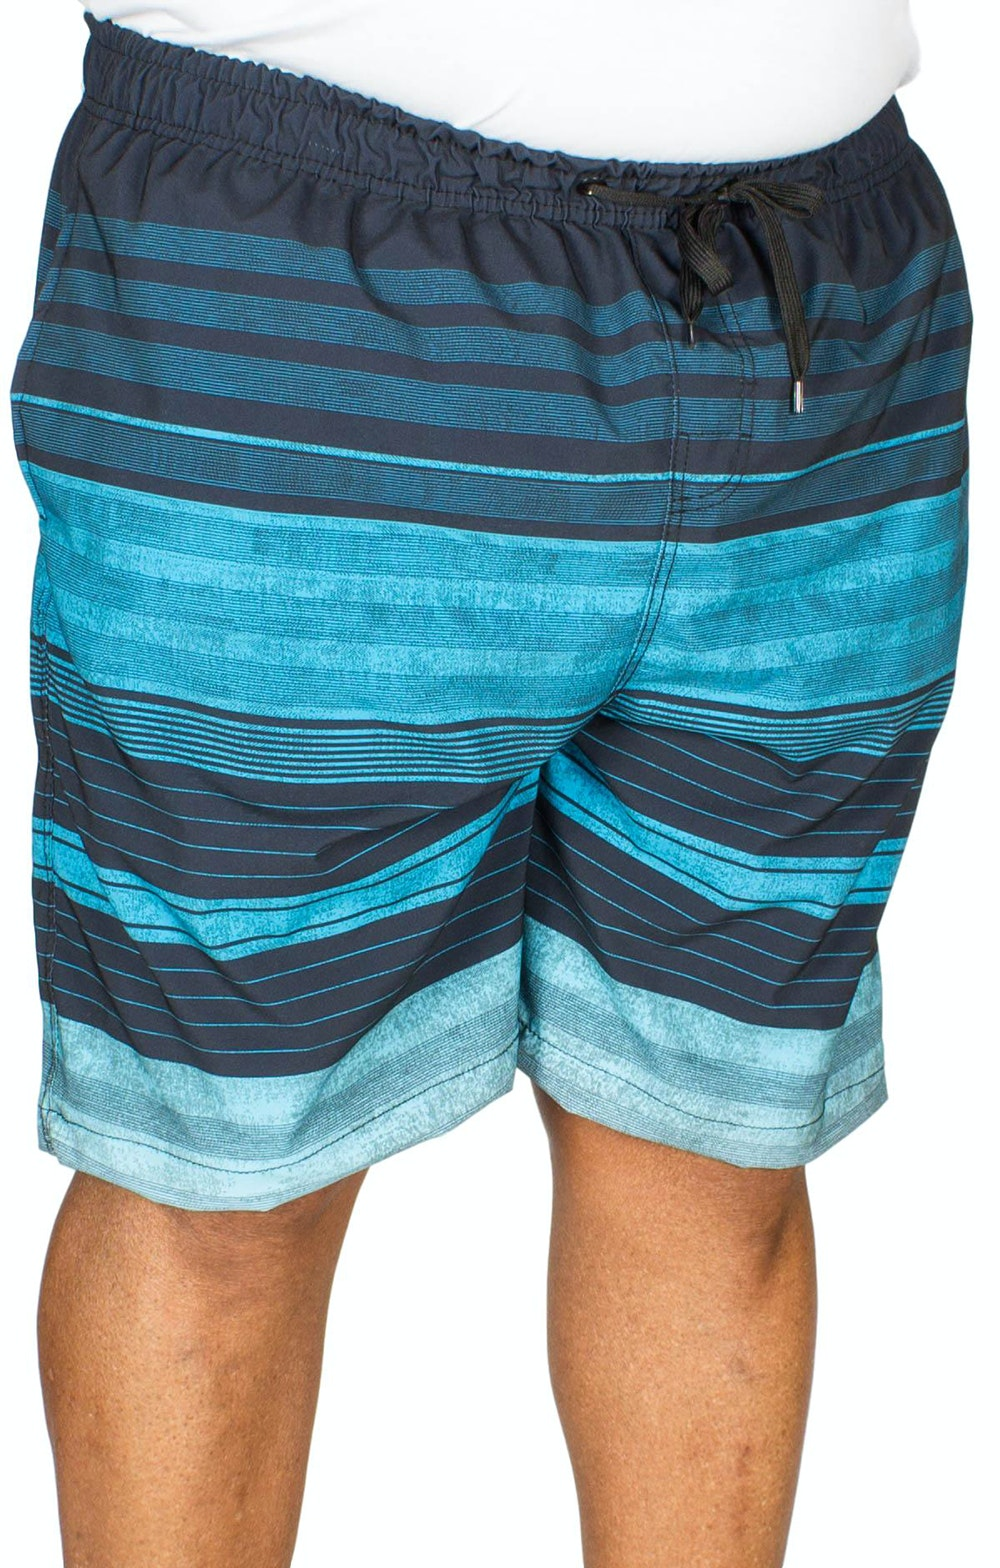 Ed Baxter Reduit Striped Swim Shorts Navy Mixed